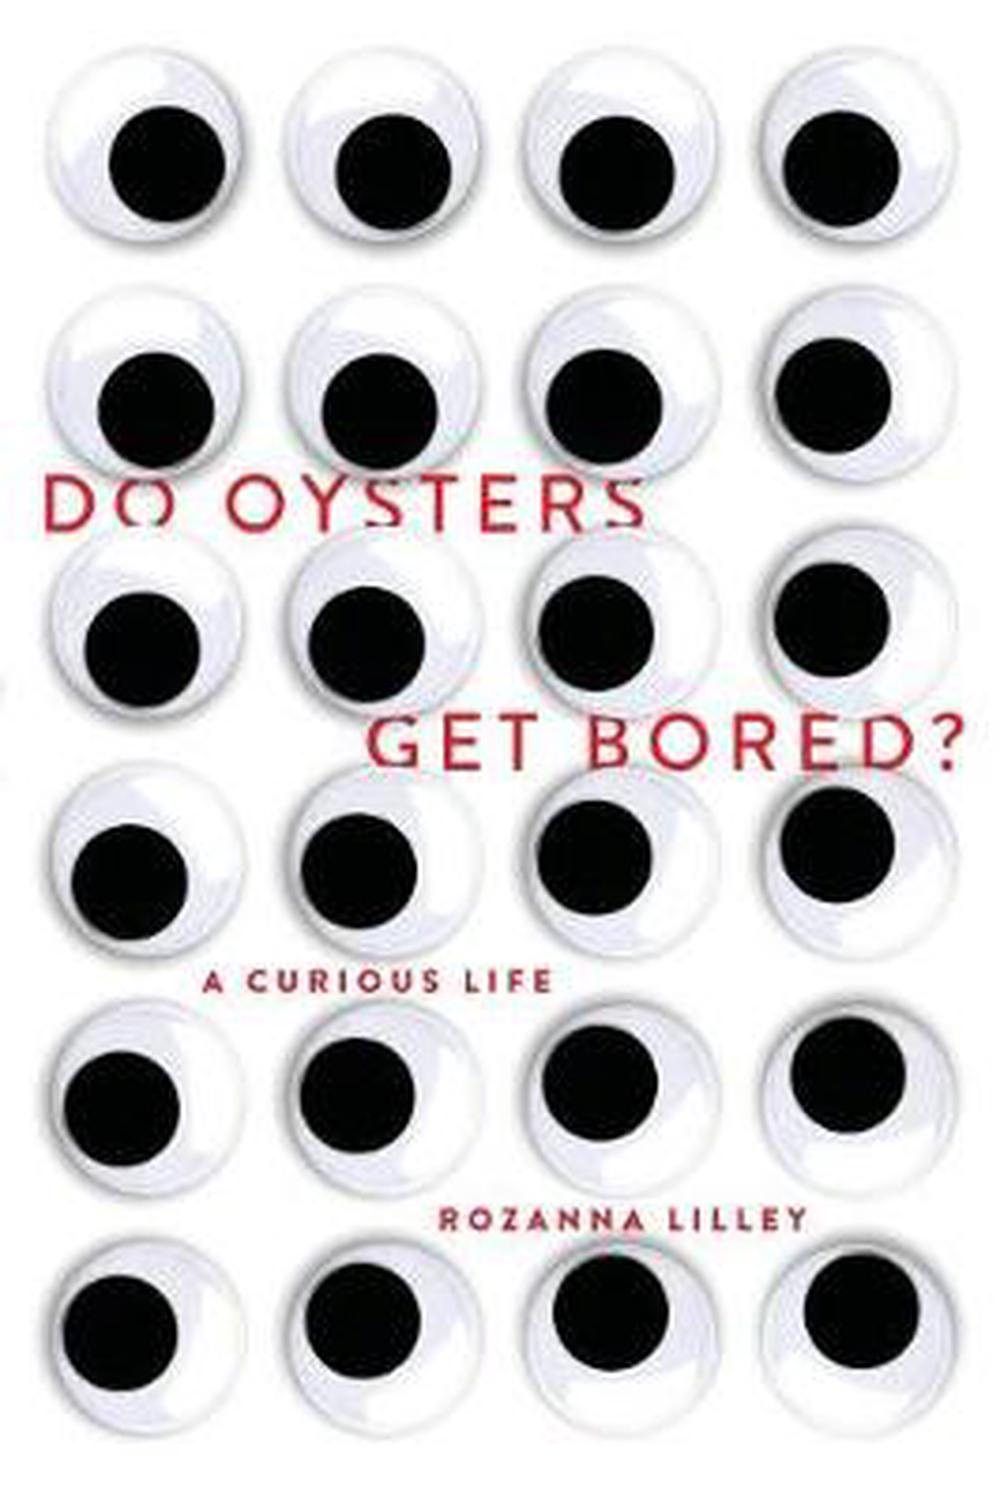 Do Oysters Get Bored?A curious life